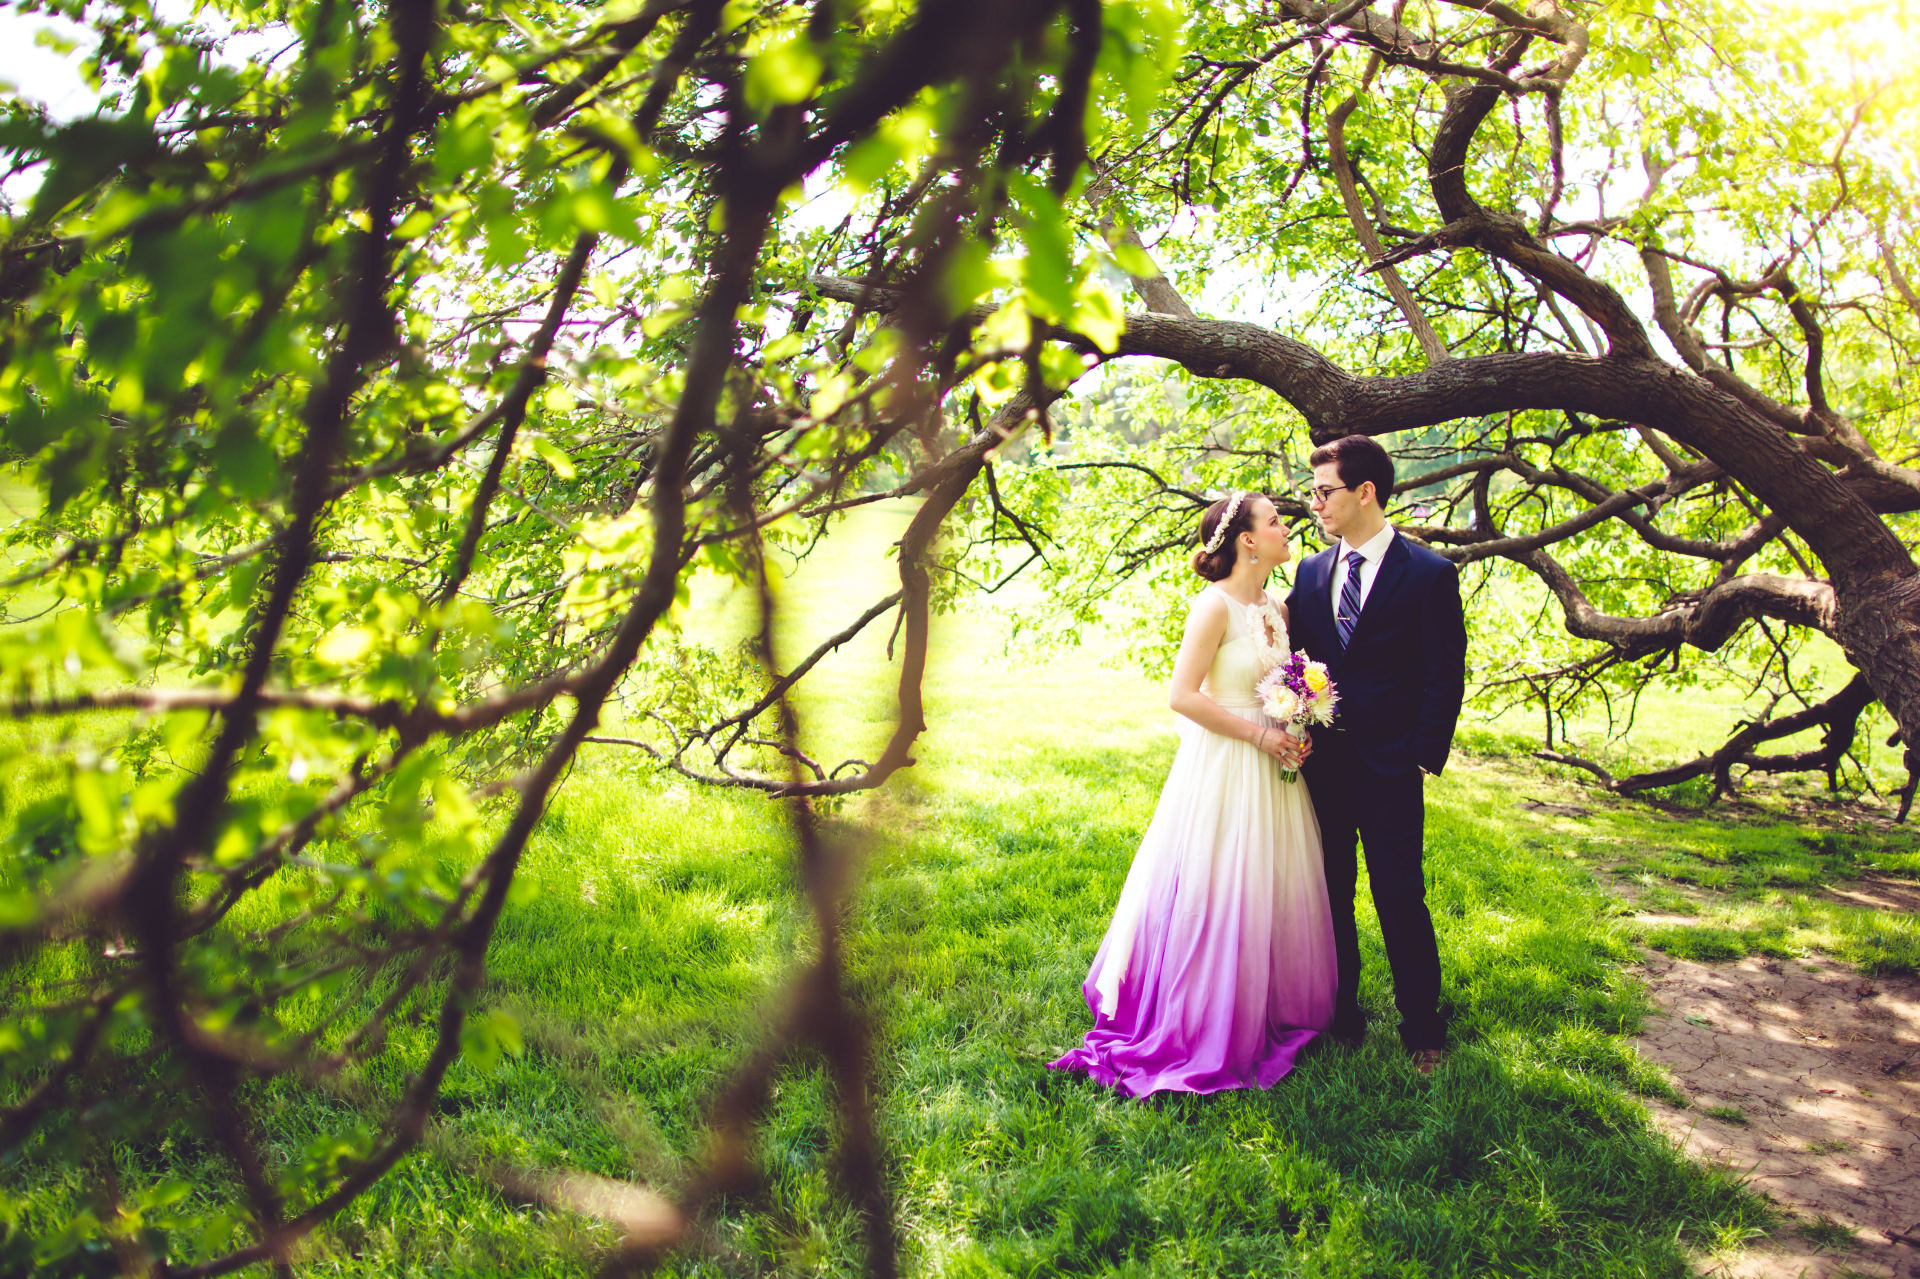 Sarah's Custom Ombre & Organic Cotton Gown